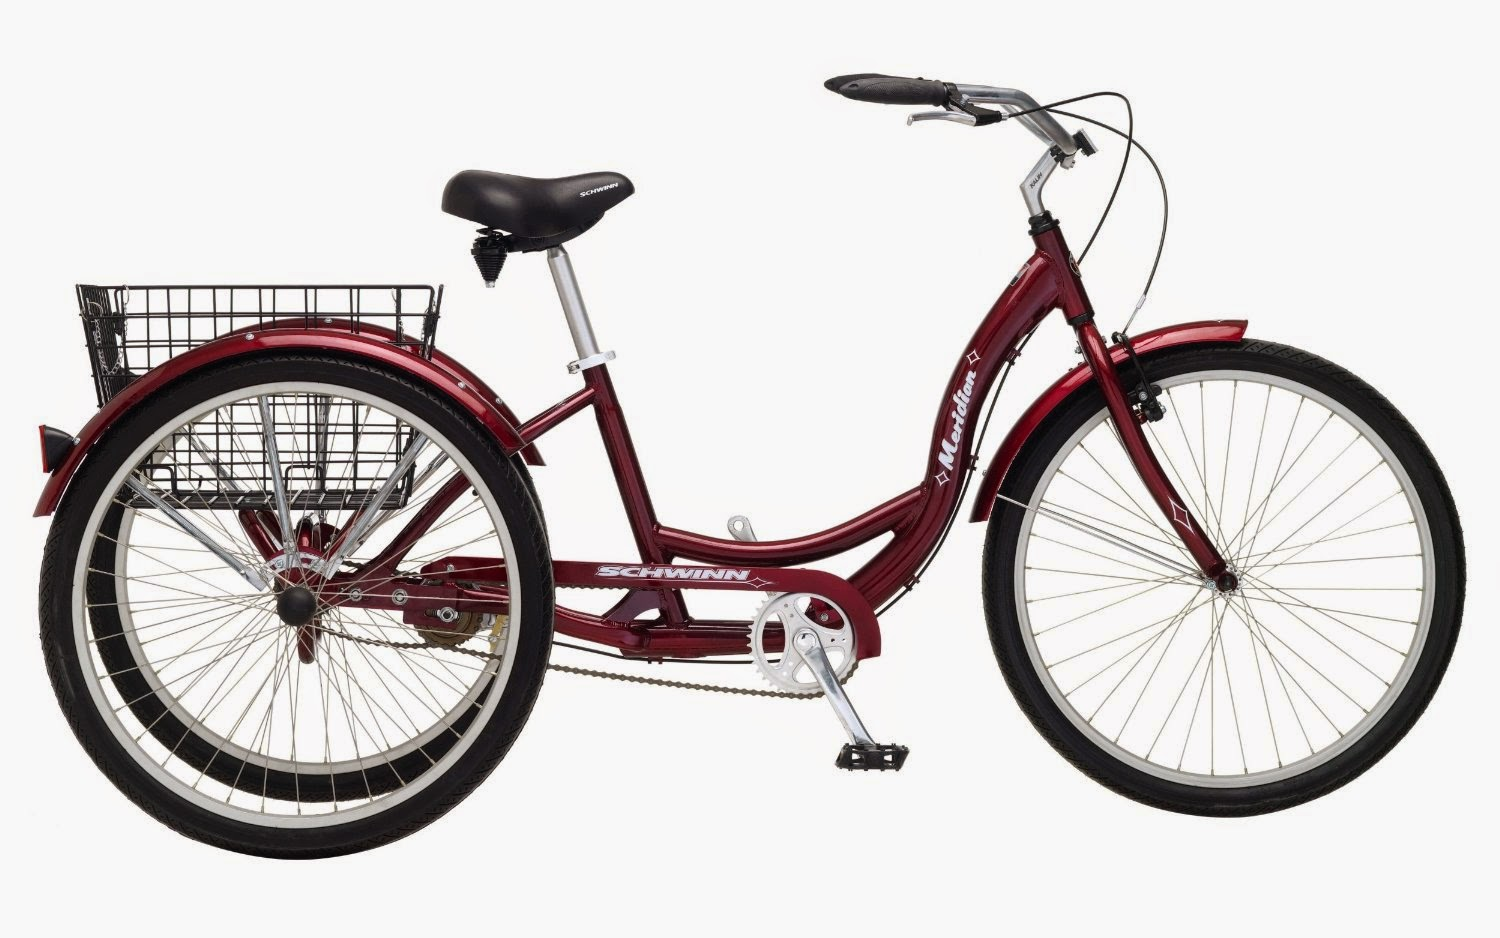 "Schwinn Meridian Single Speed Adult Tricycle, black cherry, review, ergonomically designed, cruiser handlebars, padded spring saddle, low step through frame design, folding rear basket, 26"" or 24"" wheels"